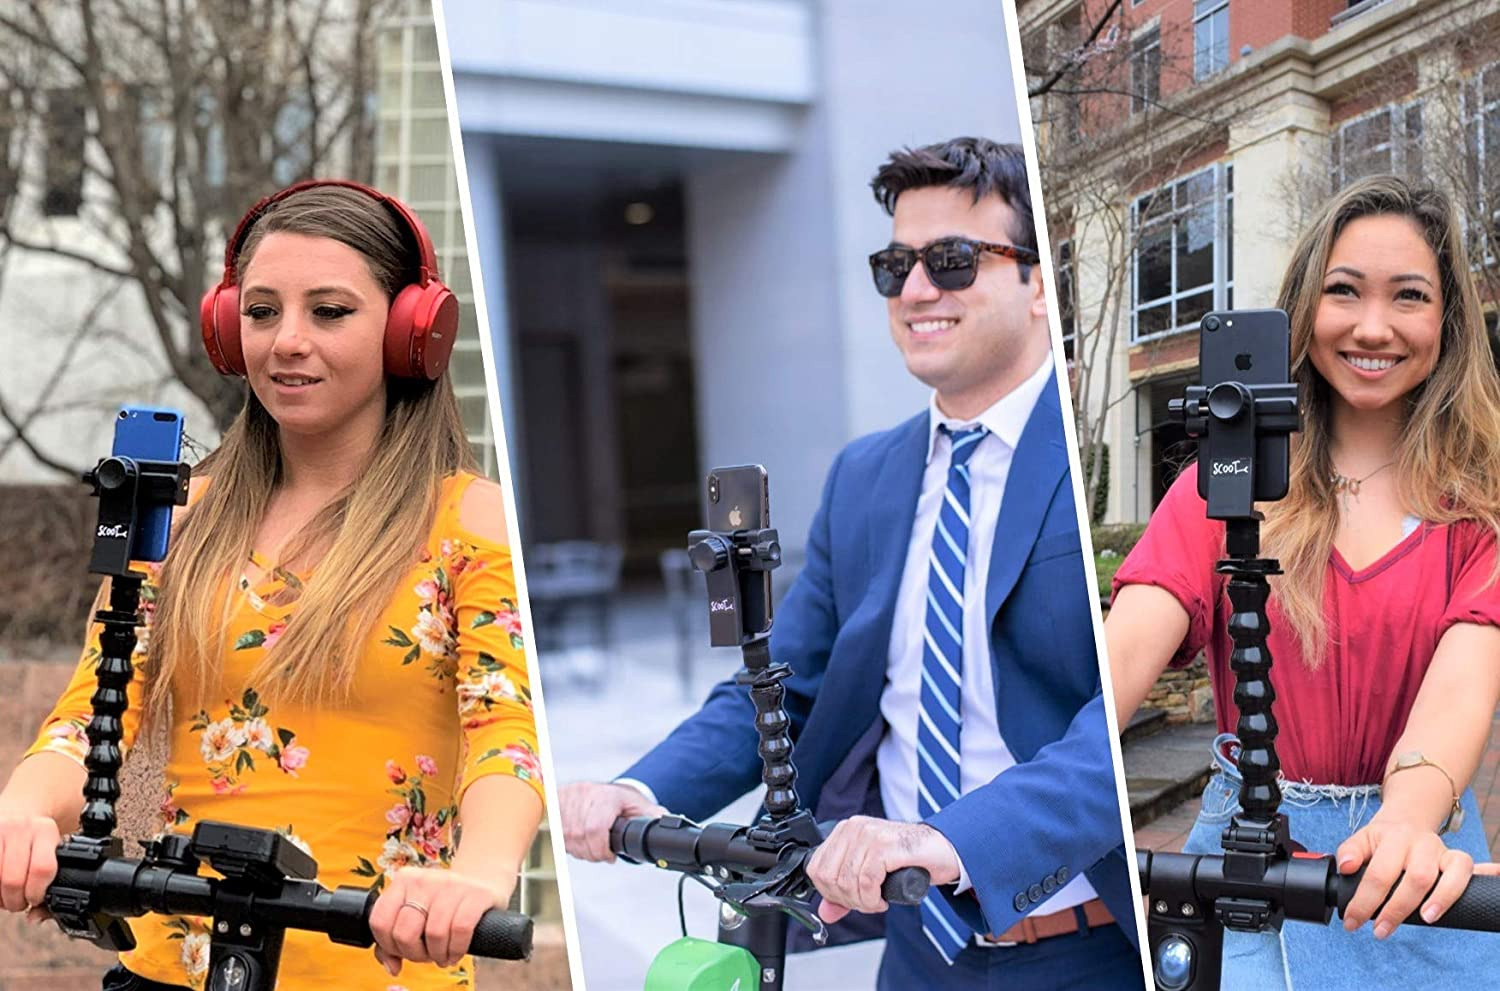 SCOOTY Flexible and Adjustable Phone Holder for Scooters and Bicycles Compatible with Lime, Bird, Spin, Lyft, and iPhone 11//11 Pro//11 Pro Max//X//XS//8//7//6, Samsung Galaxy Note 10+//10//9//8 and Others